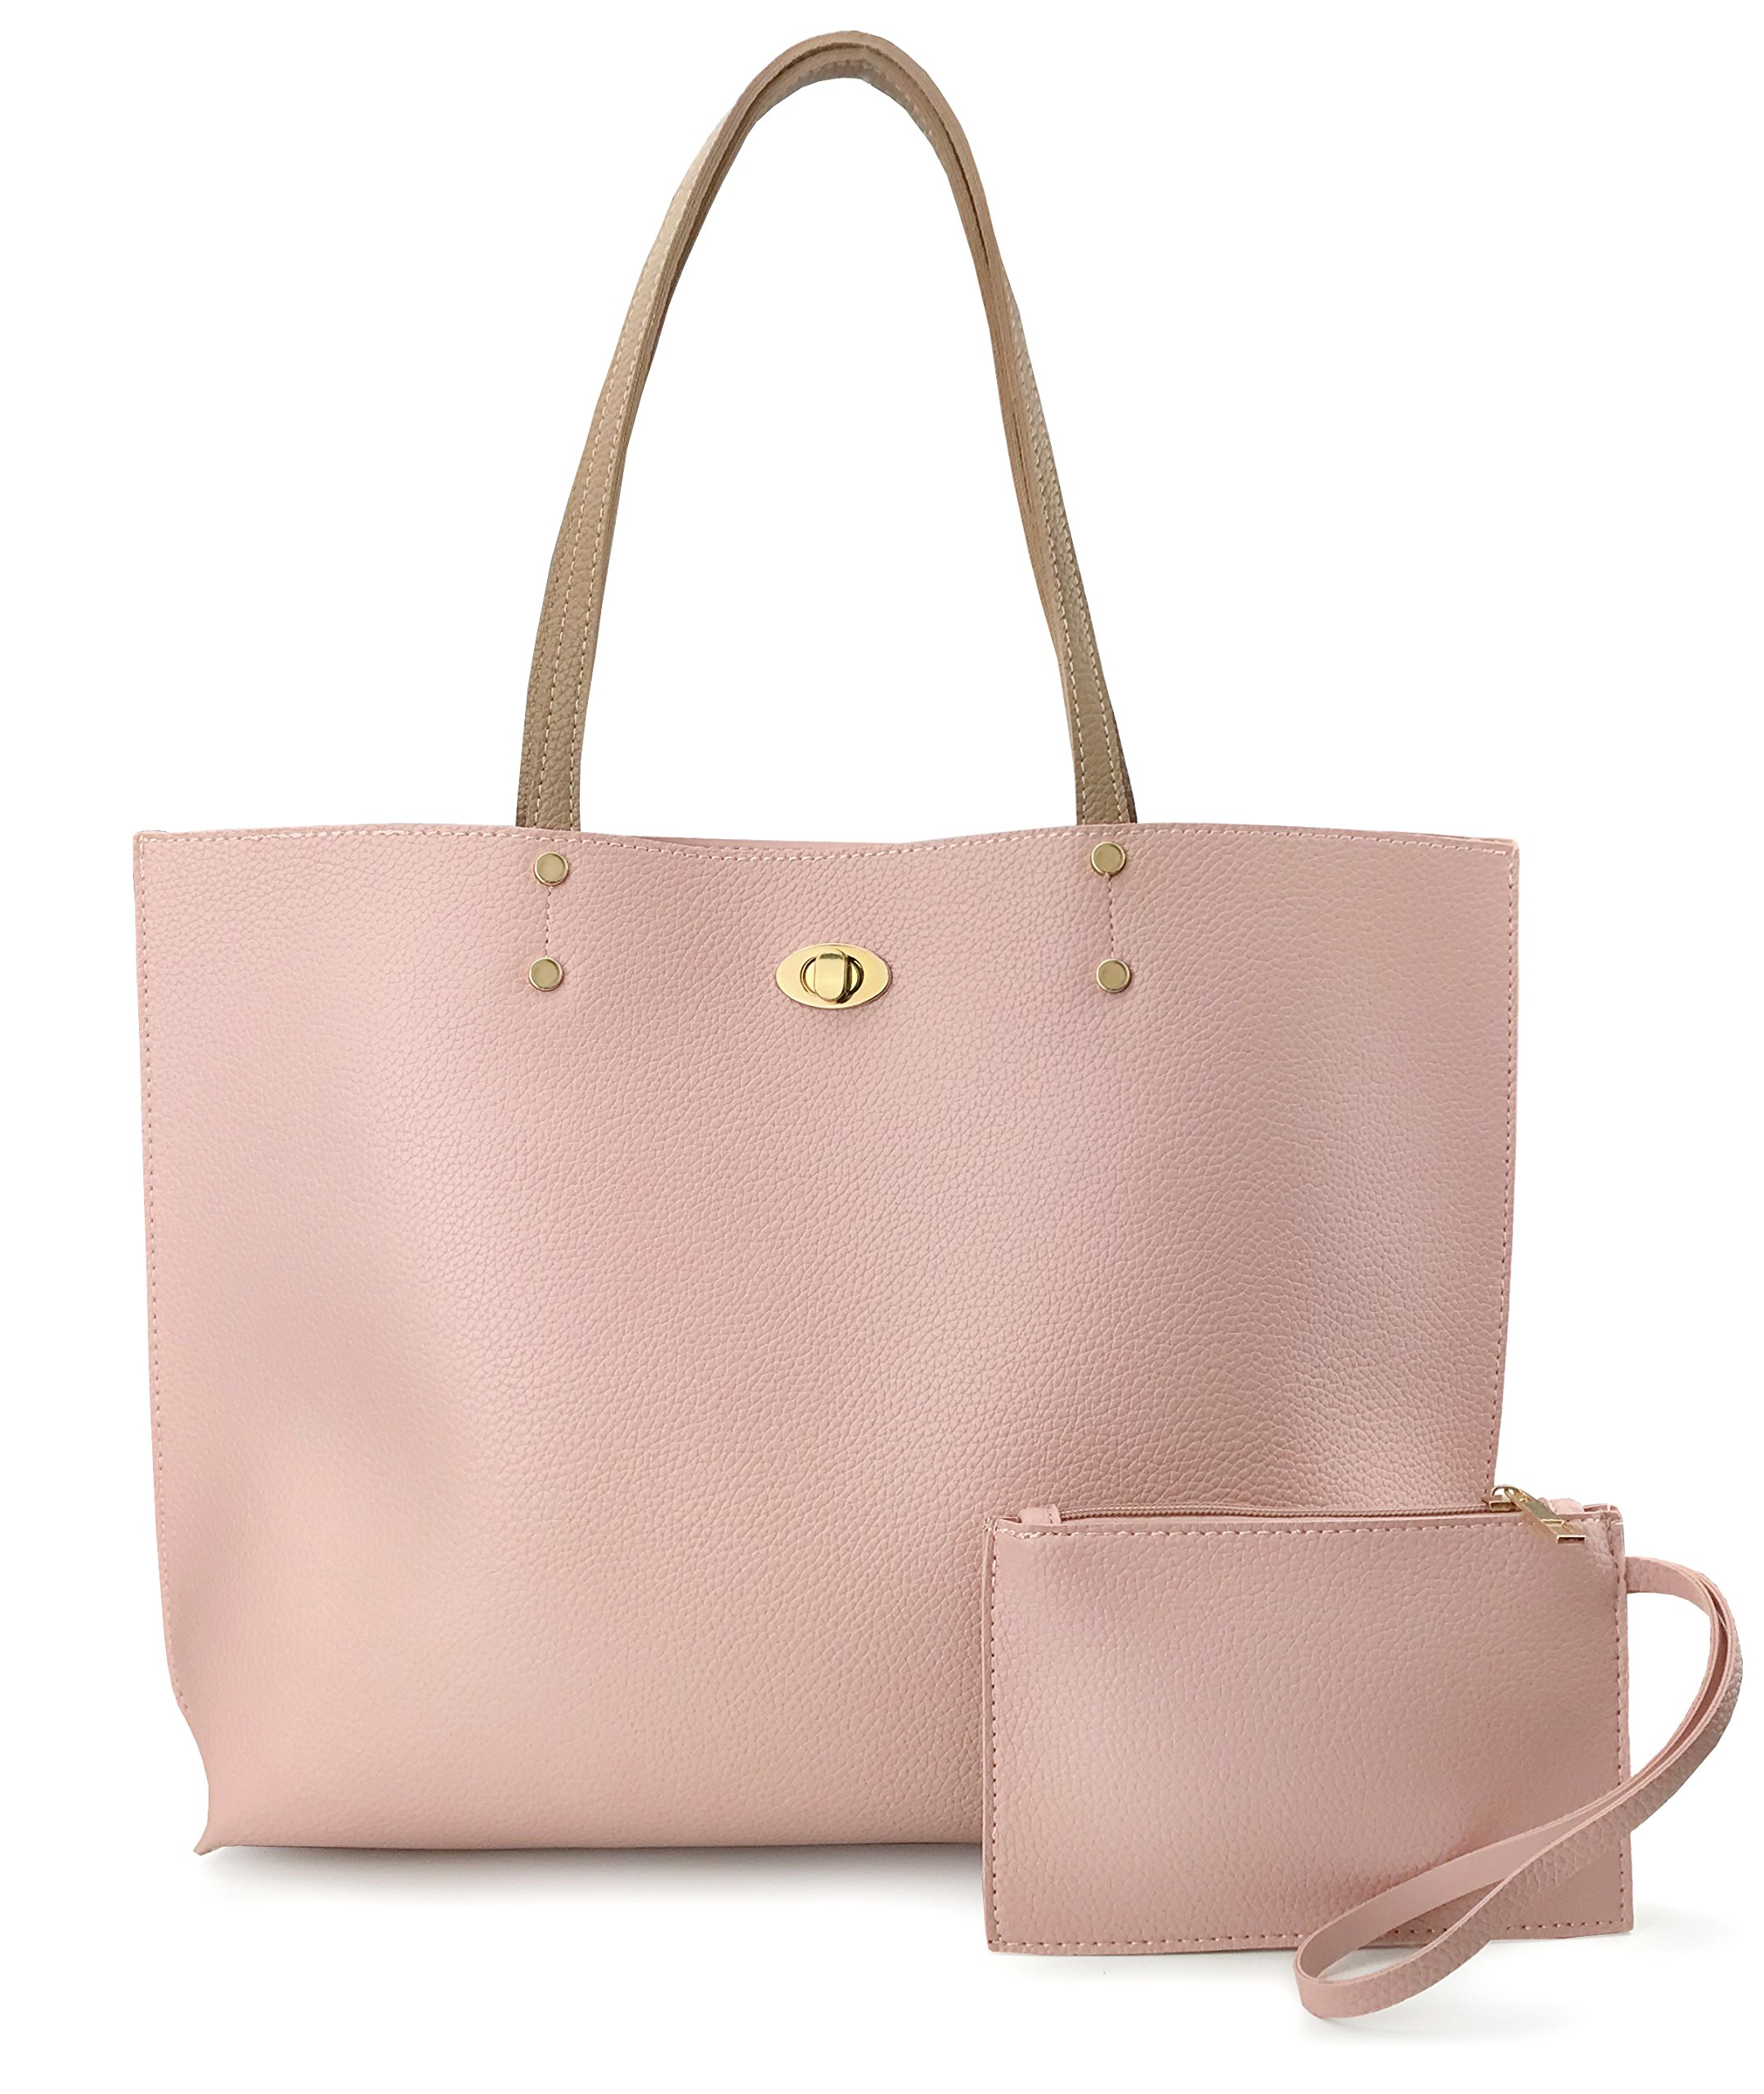 Women's Tote Color-Block Pebbled Faux Leather Shoulder Handbag With Zipper Pocuh Wristlet (Pink)